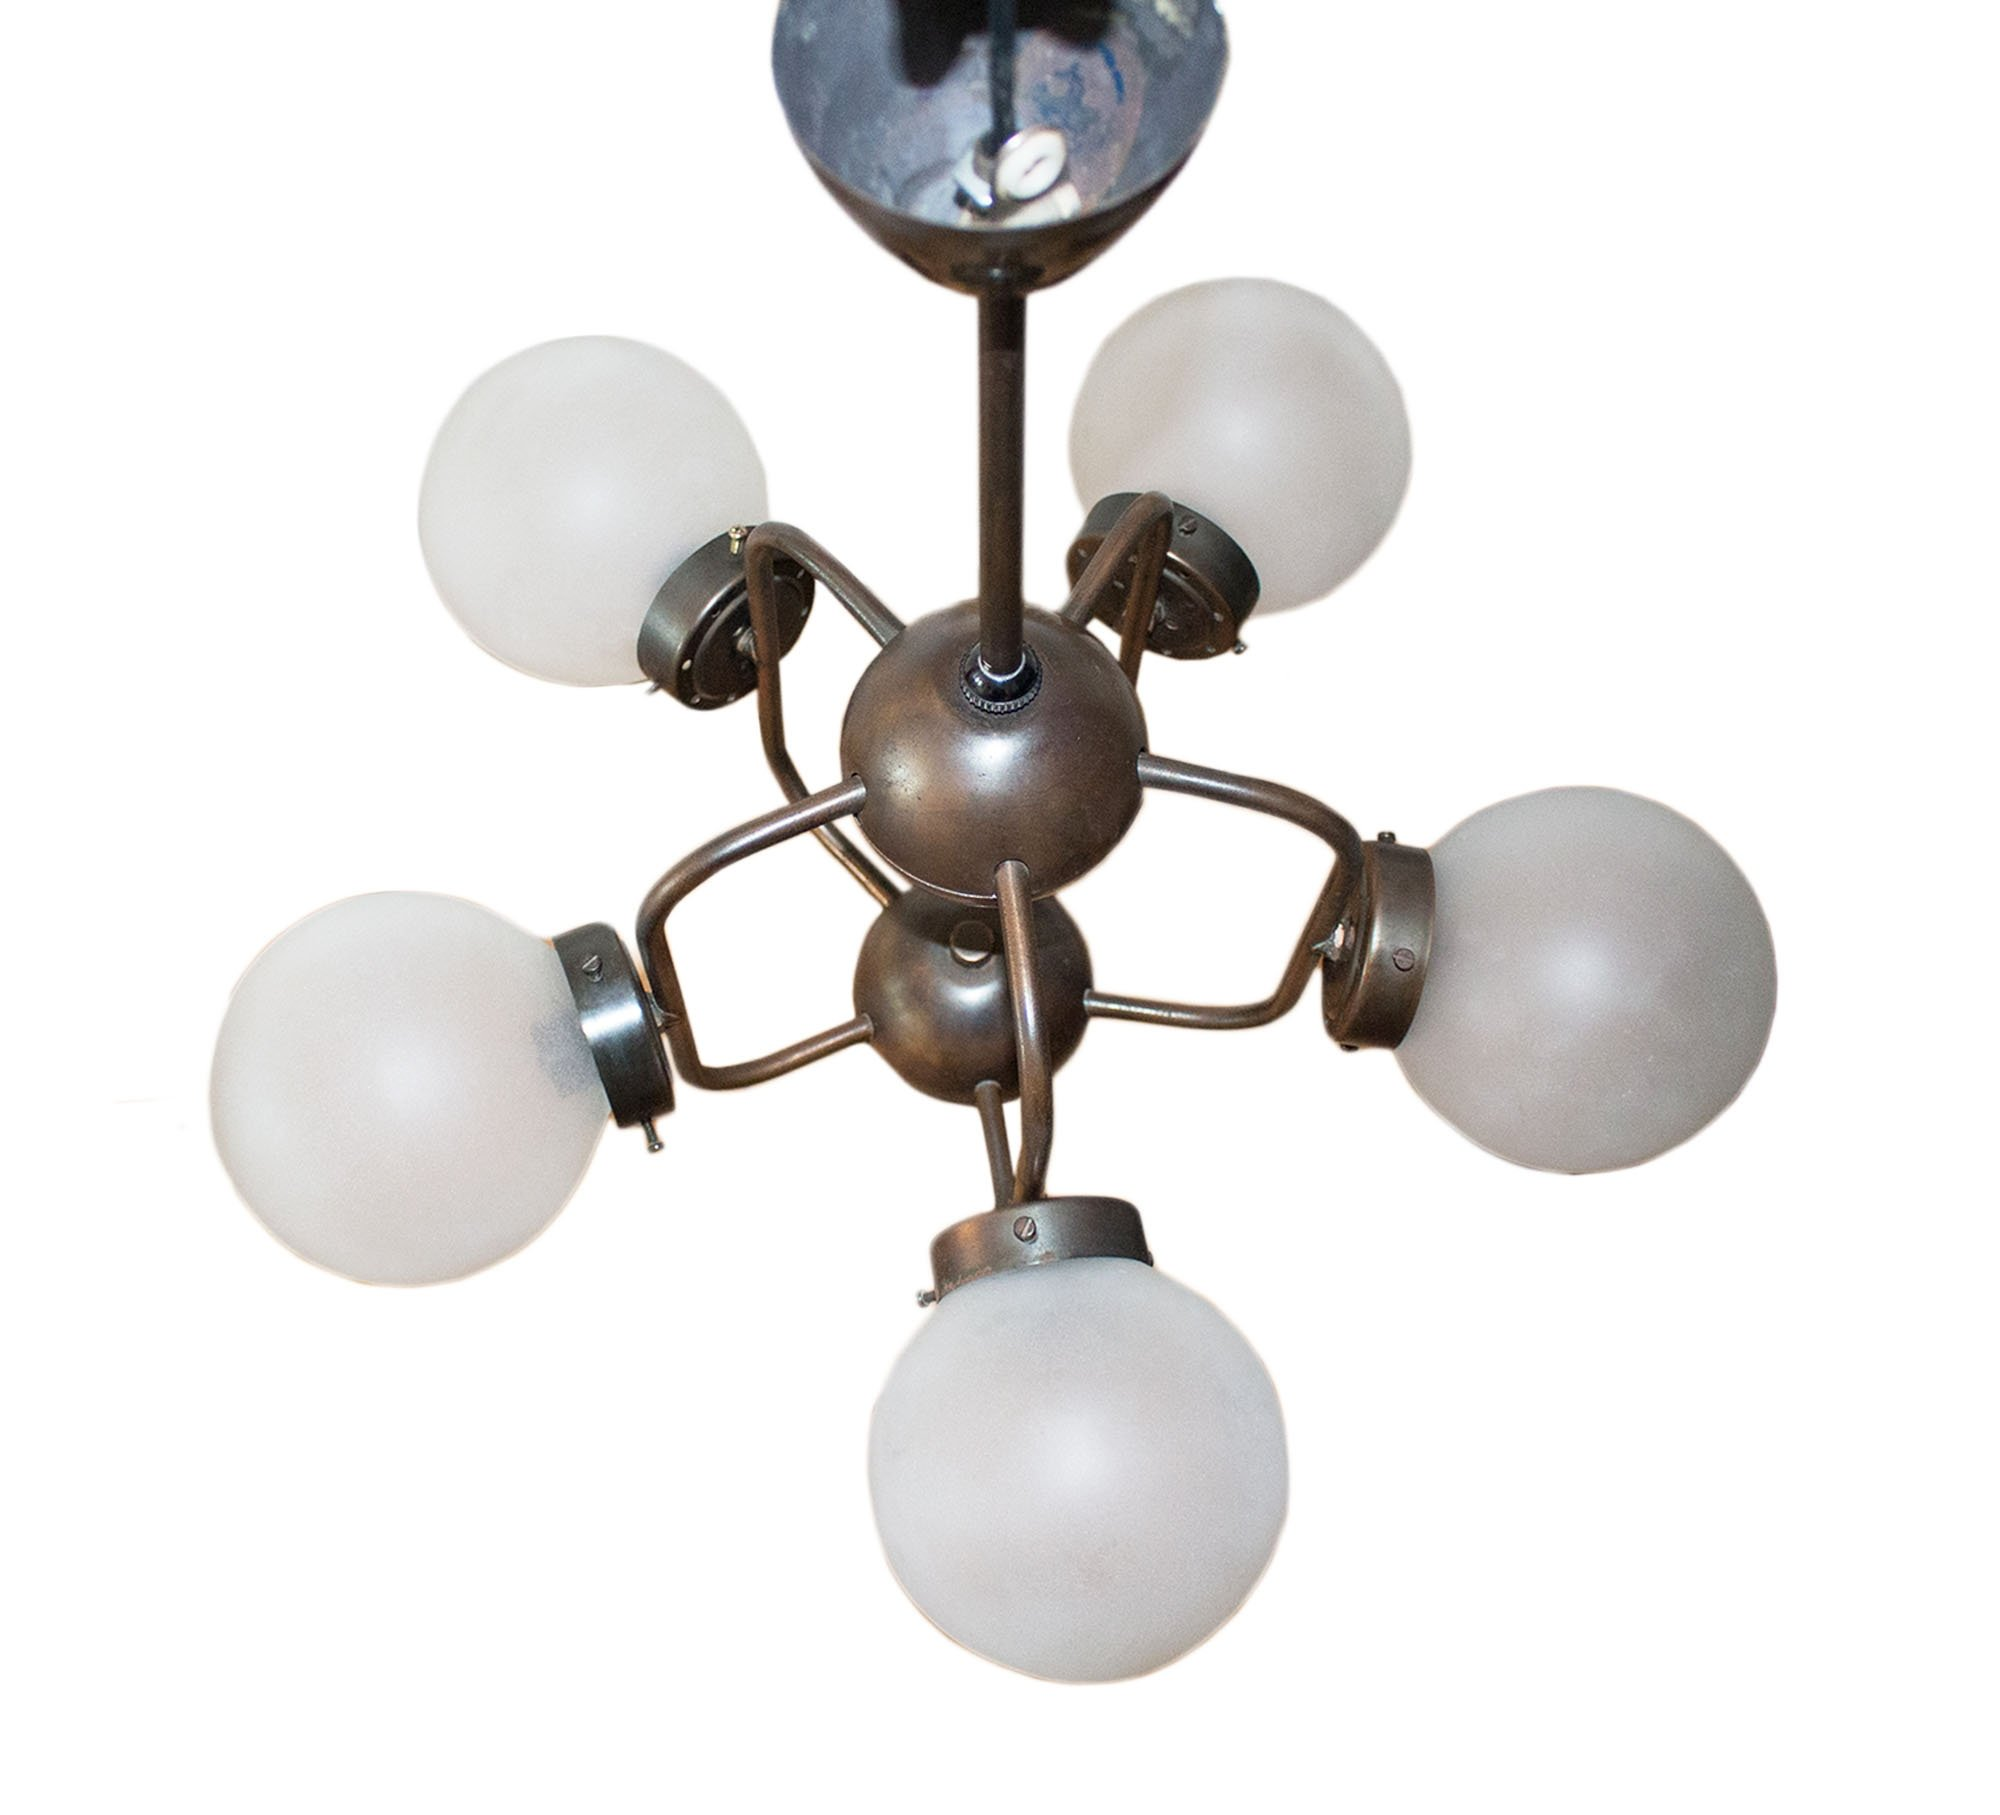 Space age atomic age ceiling lamp with 5 lights 1970s 68412 space age atomic age ceiling lamp with 5 lights 1970s arubaitofo Choice Image